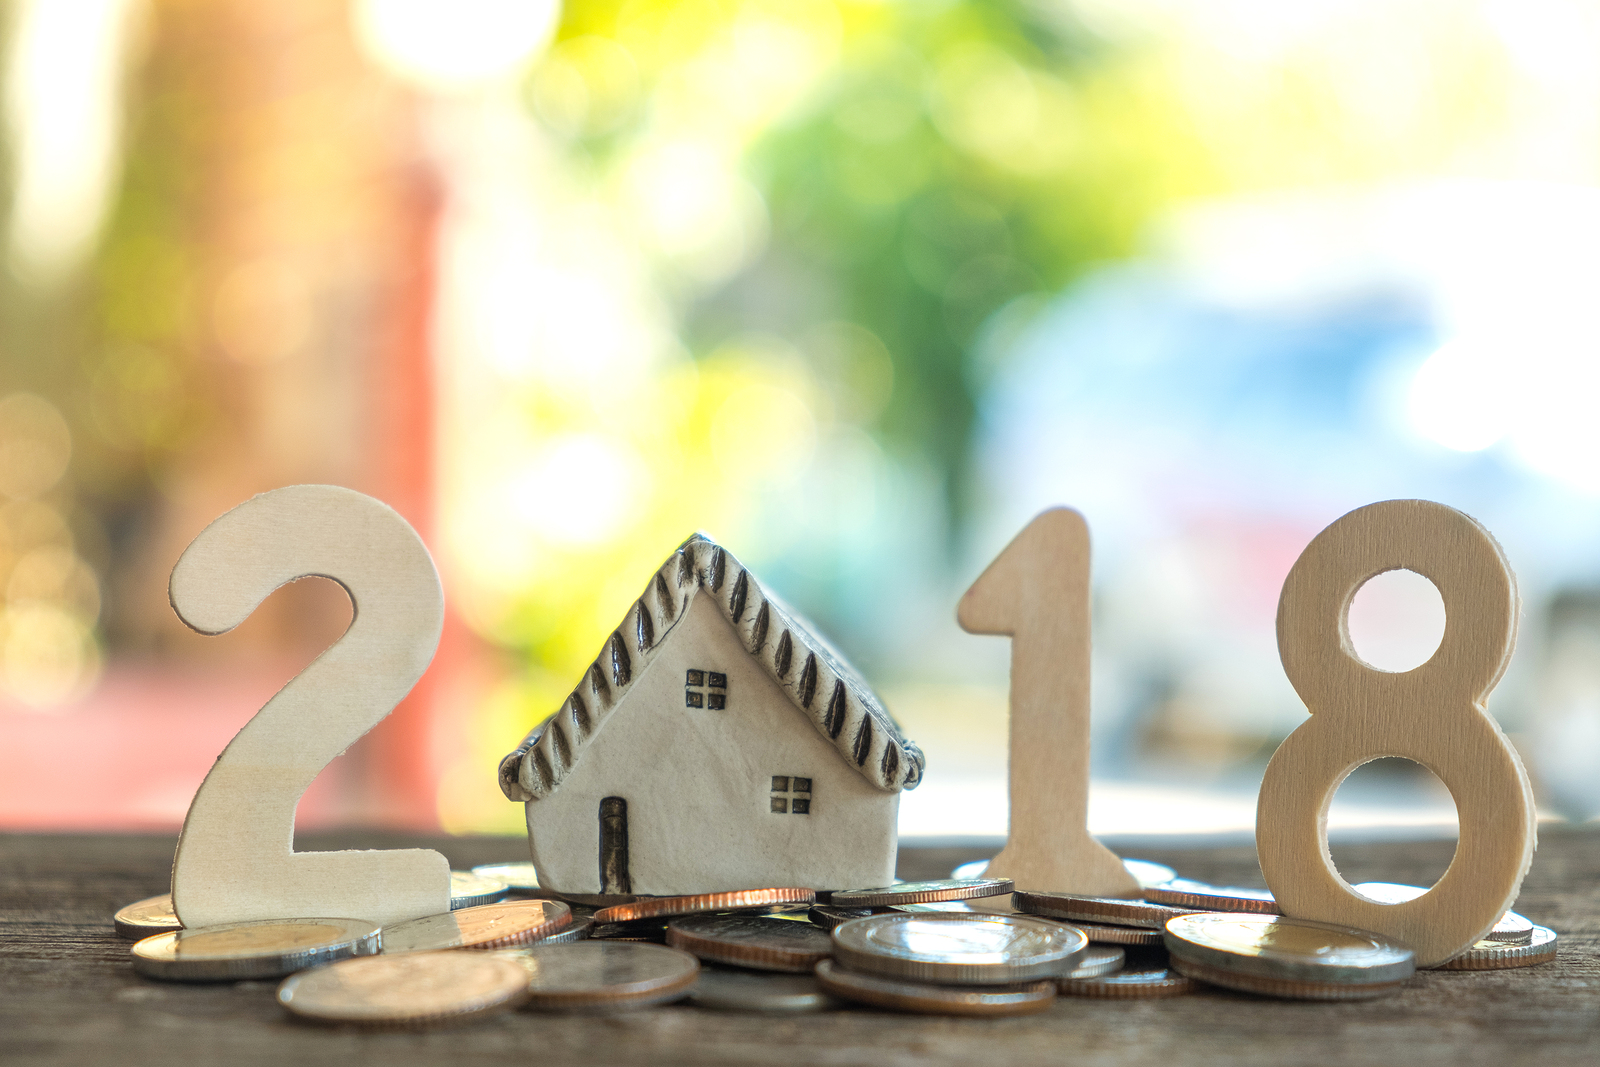 2018 Predicts Booming Real Estate